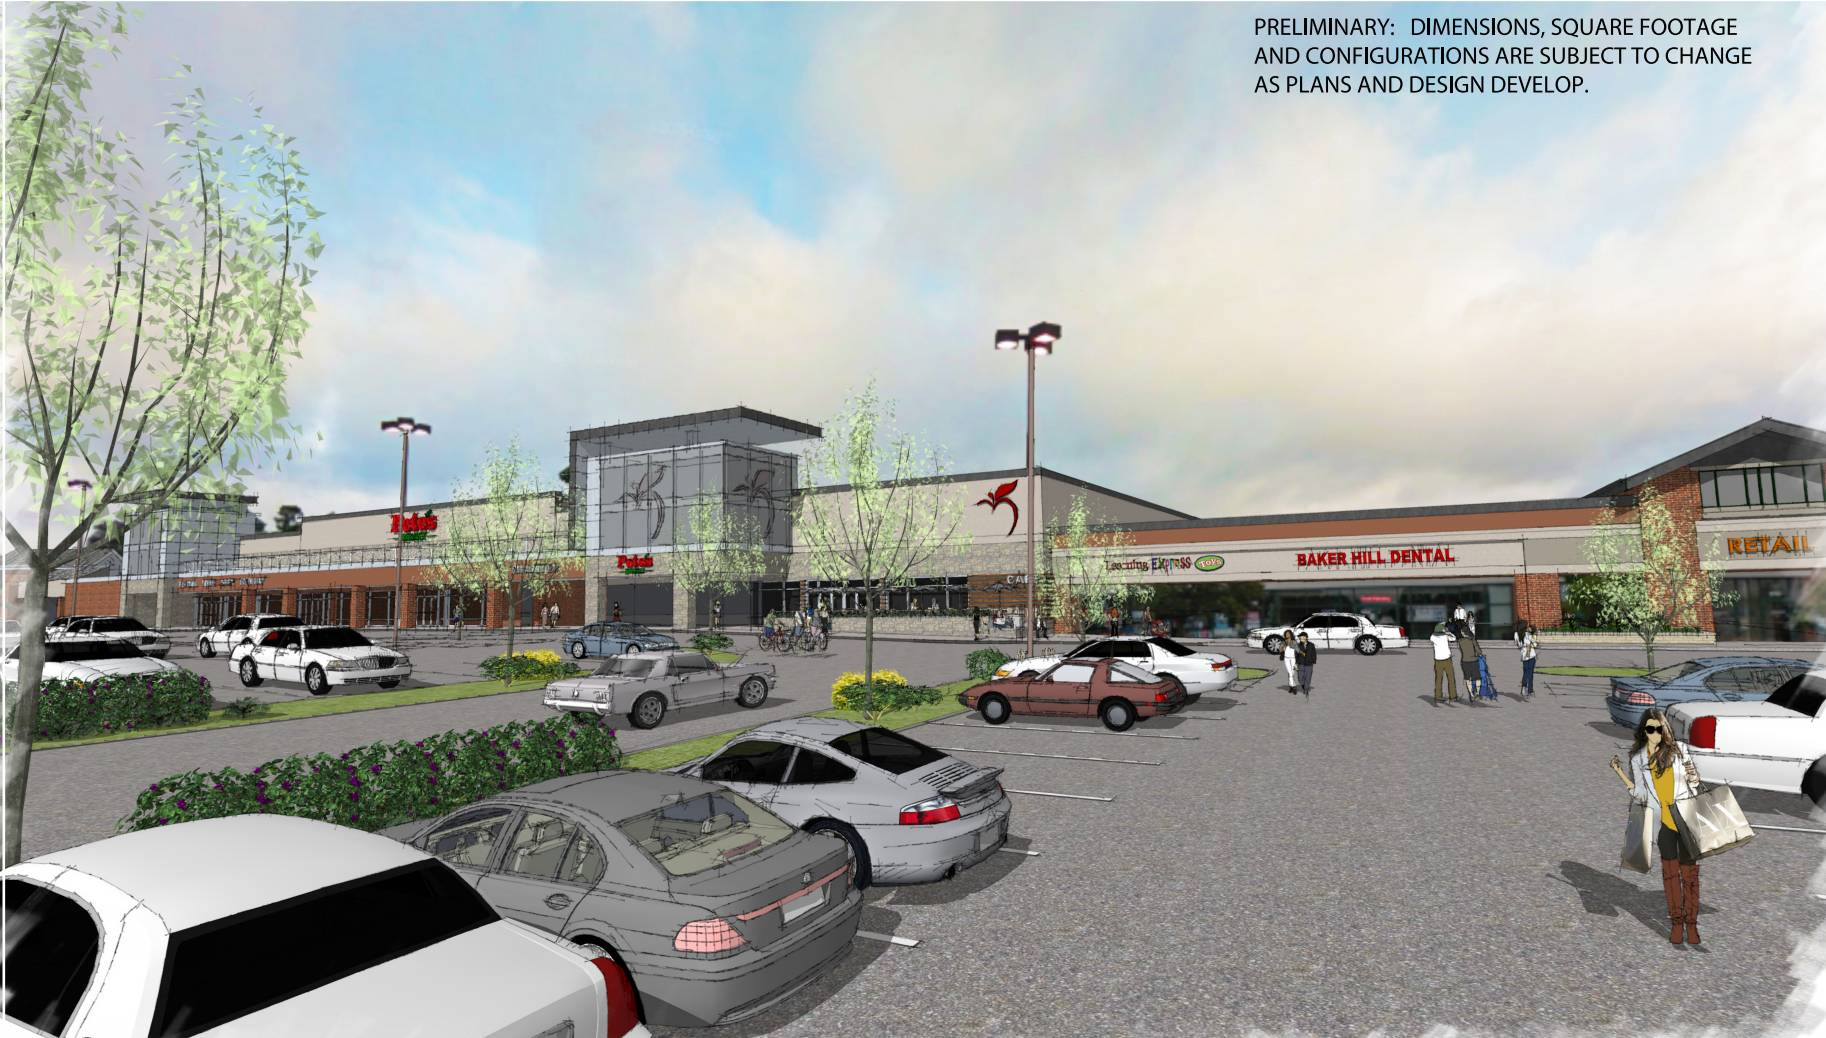 The property owner also is planning a major redesign of the rest of the Baker Hill shopping center along Roosevelt Road.